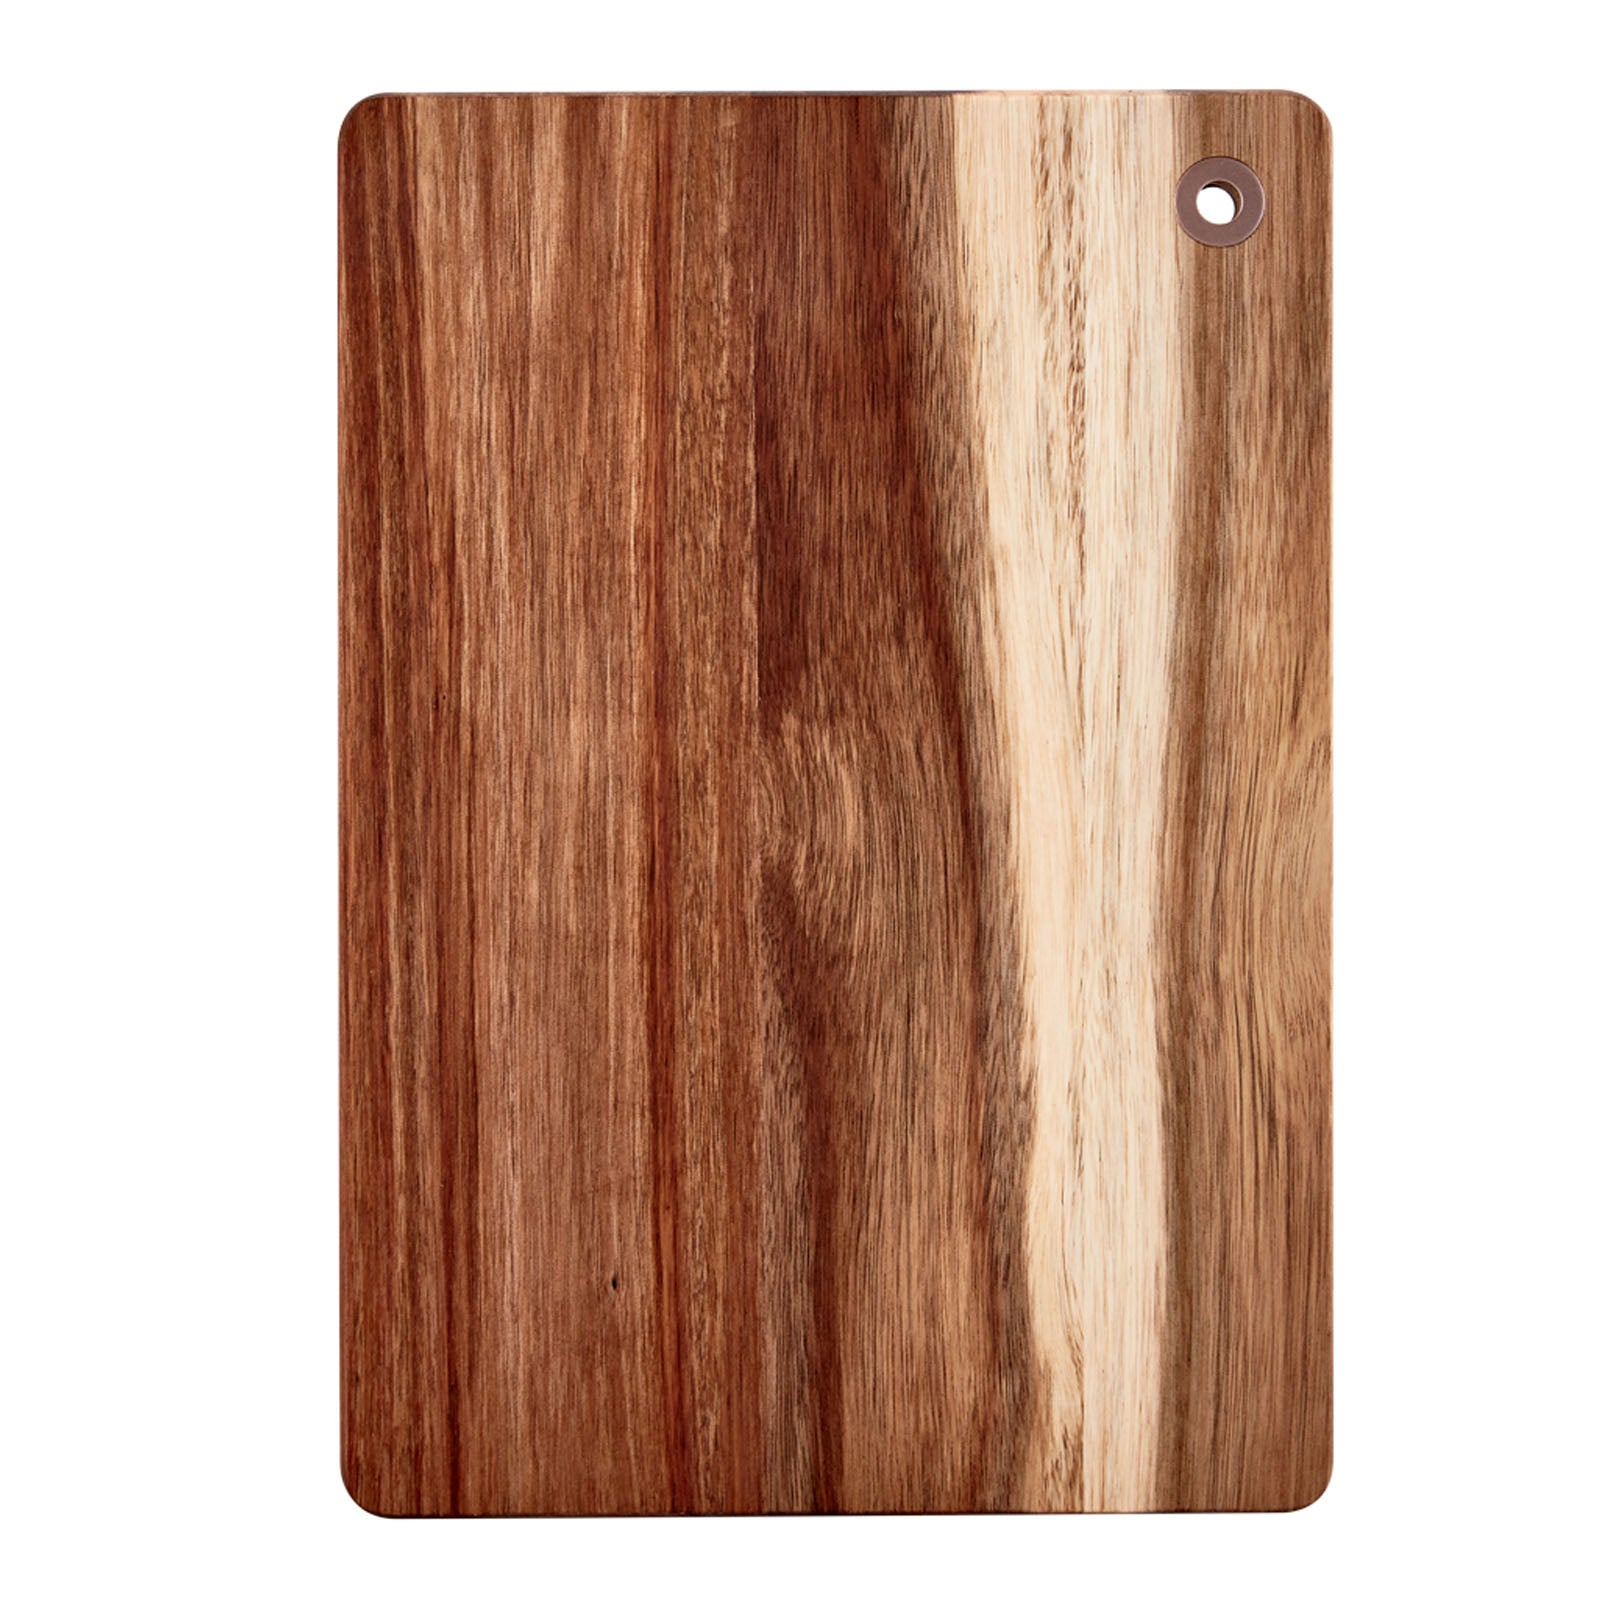 Karaca Rosegold Spring Cutting Board Medium 153.03.07.4997